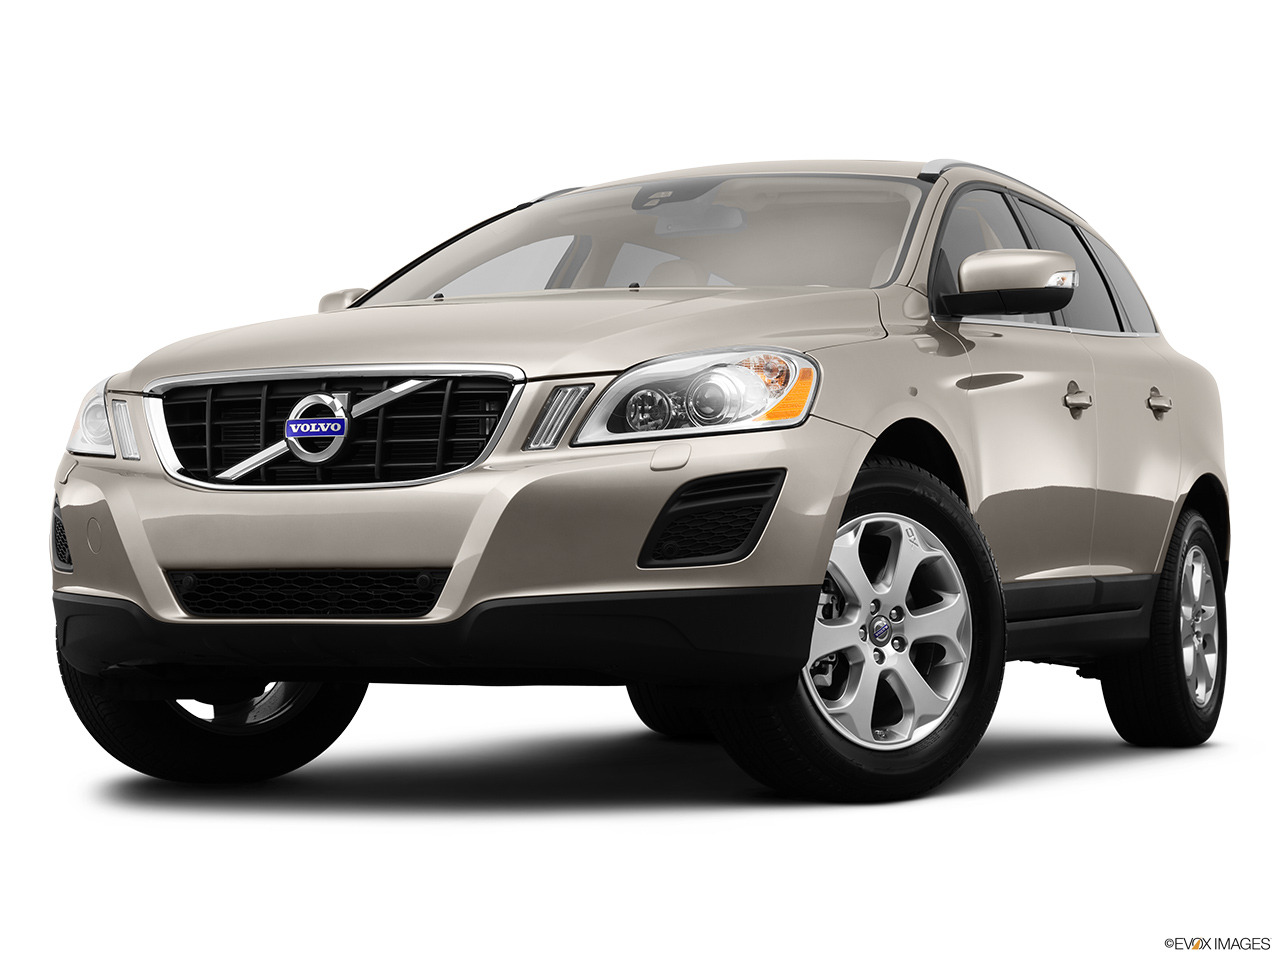 2013 Volvo XC60 3.2 FWD Premier Plus Front angle view, low wide perspective.